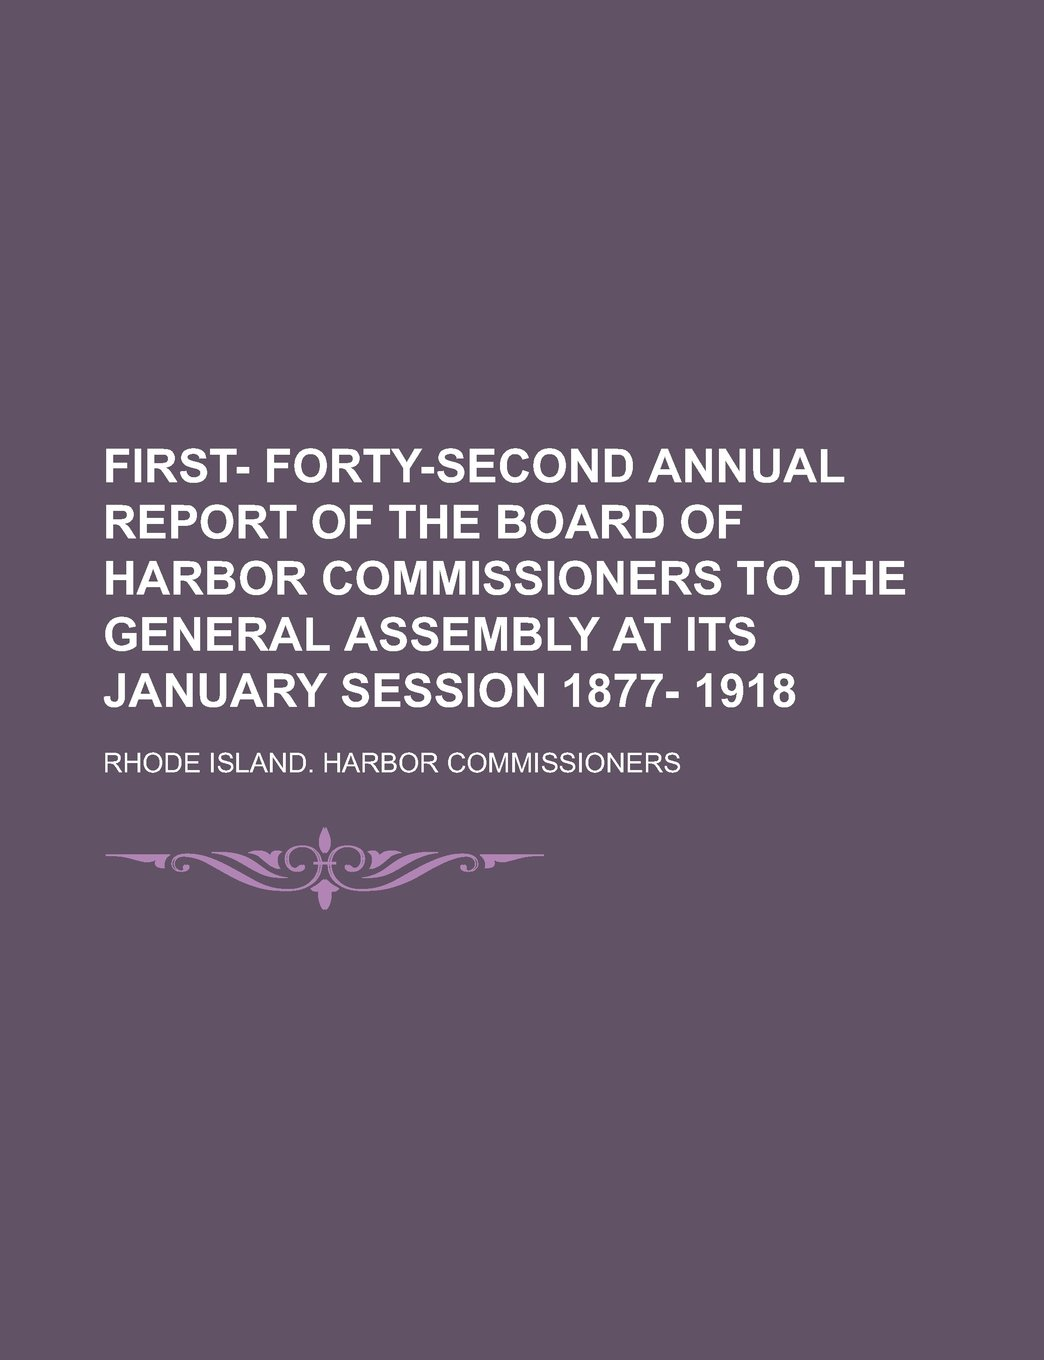 First- Forty-second annual report of the Board of harbor commissioners to the general assembly at its January session 1877- 1918 ebook